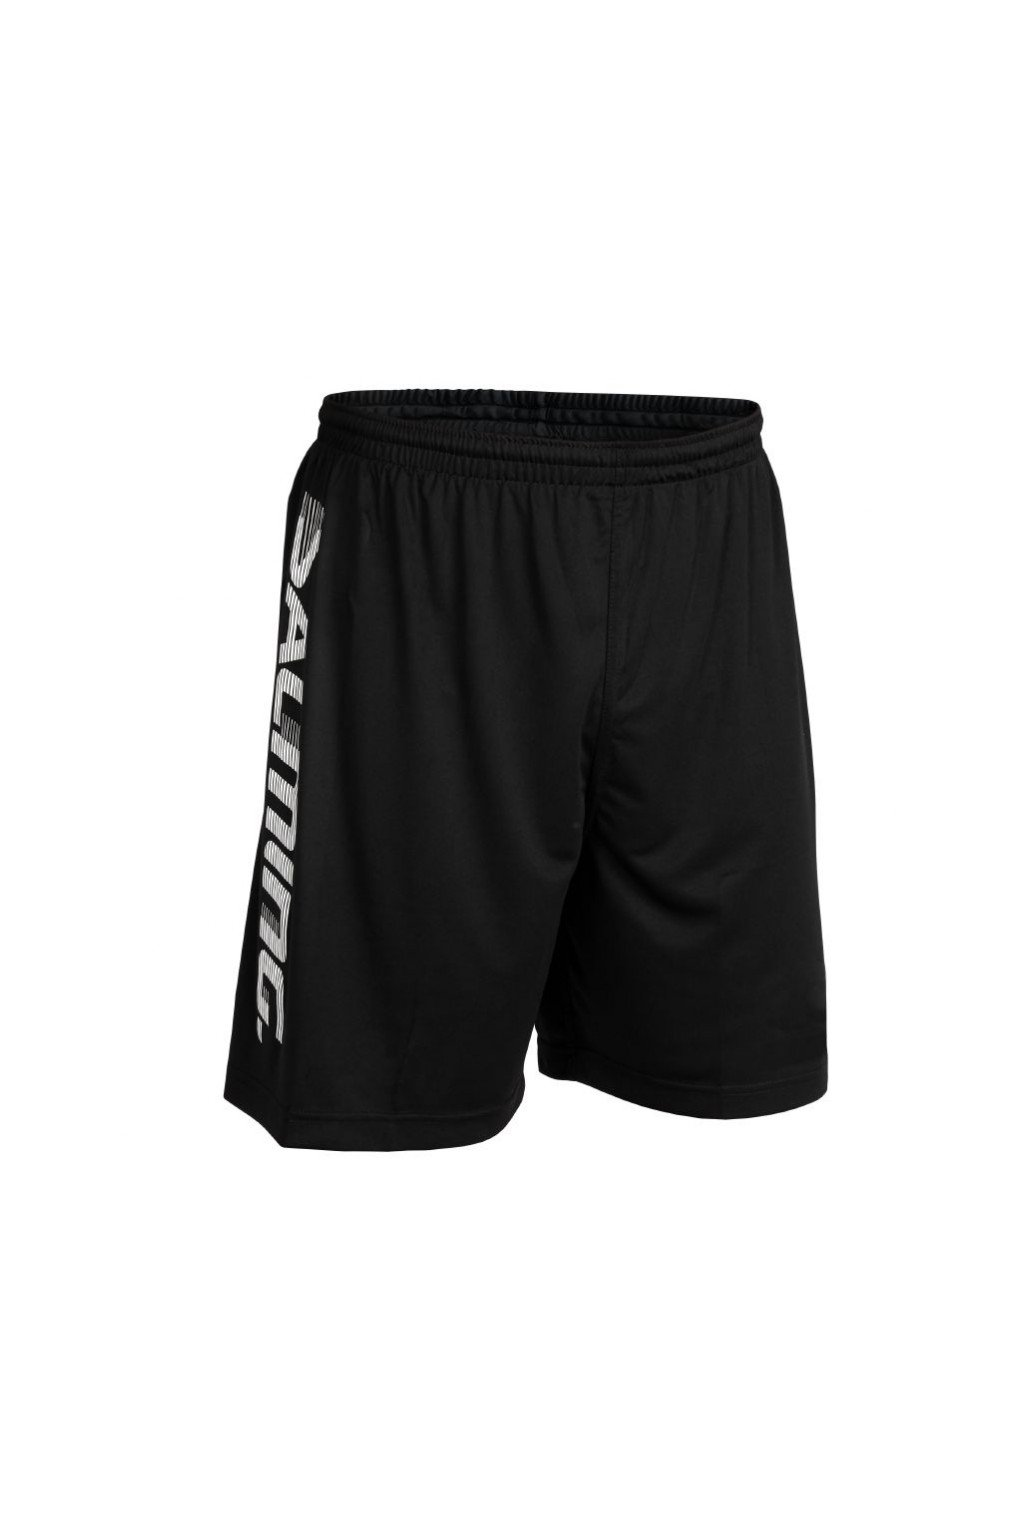 salming training shorts 20 black xxxl